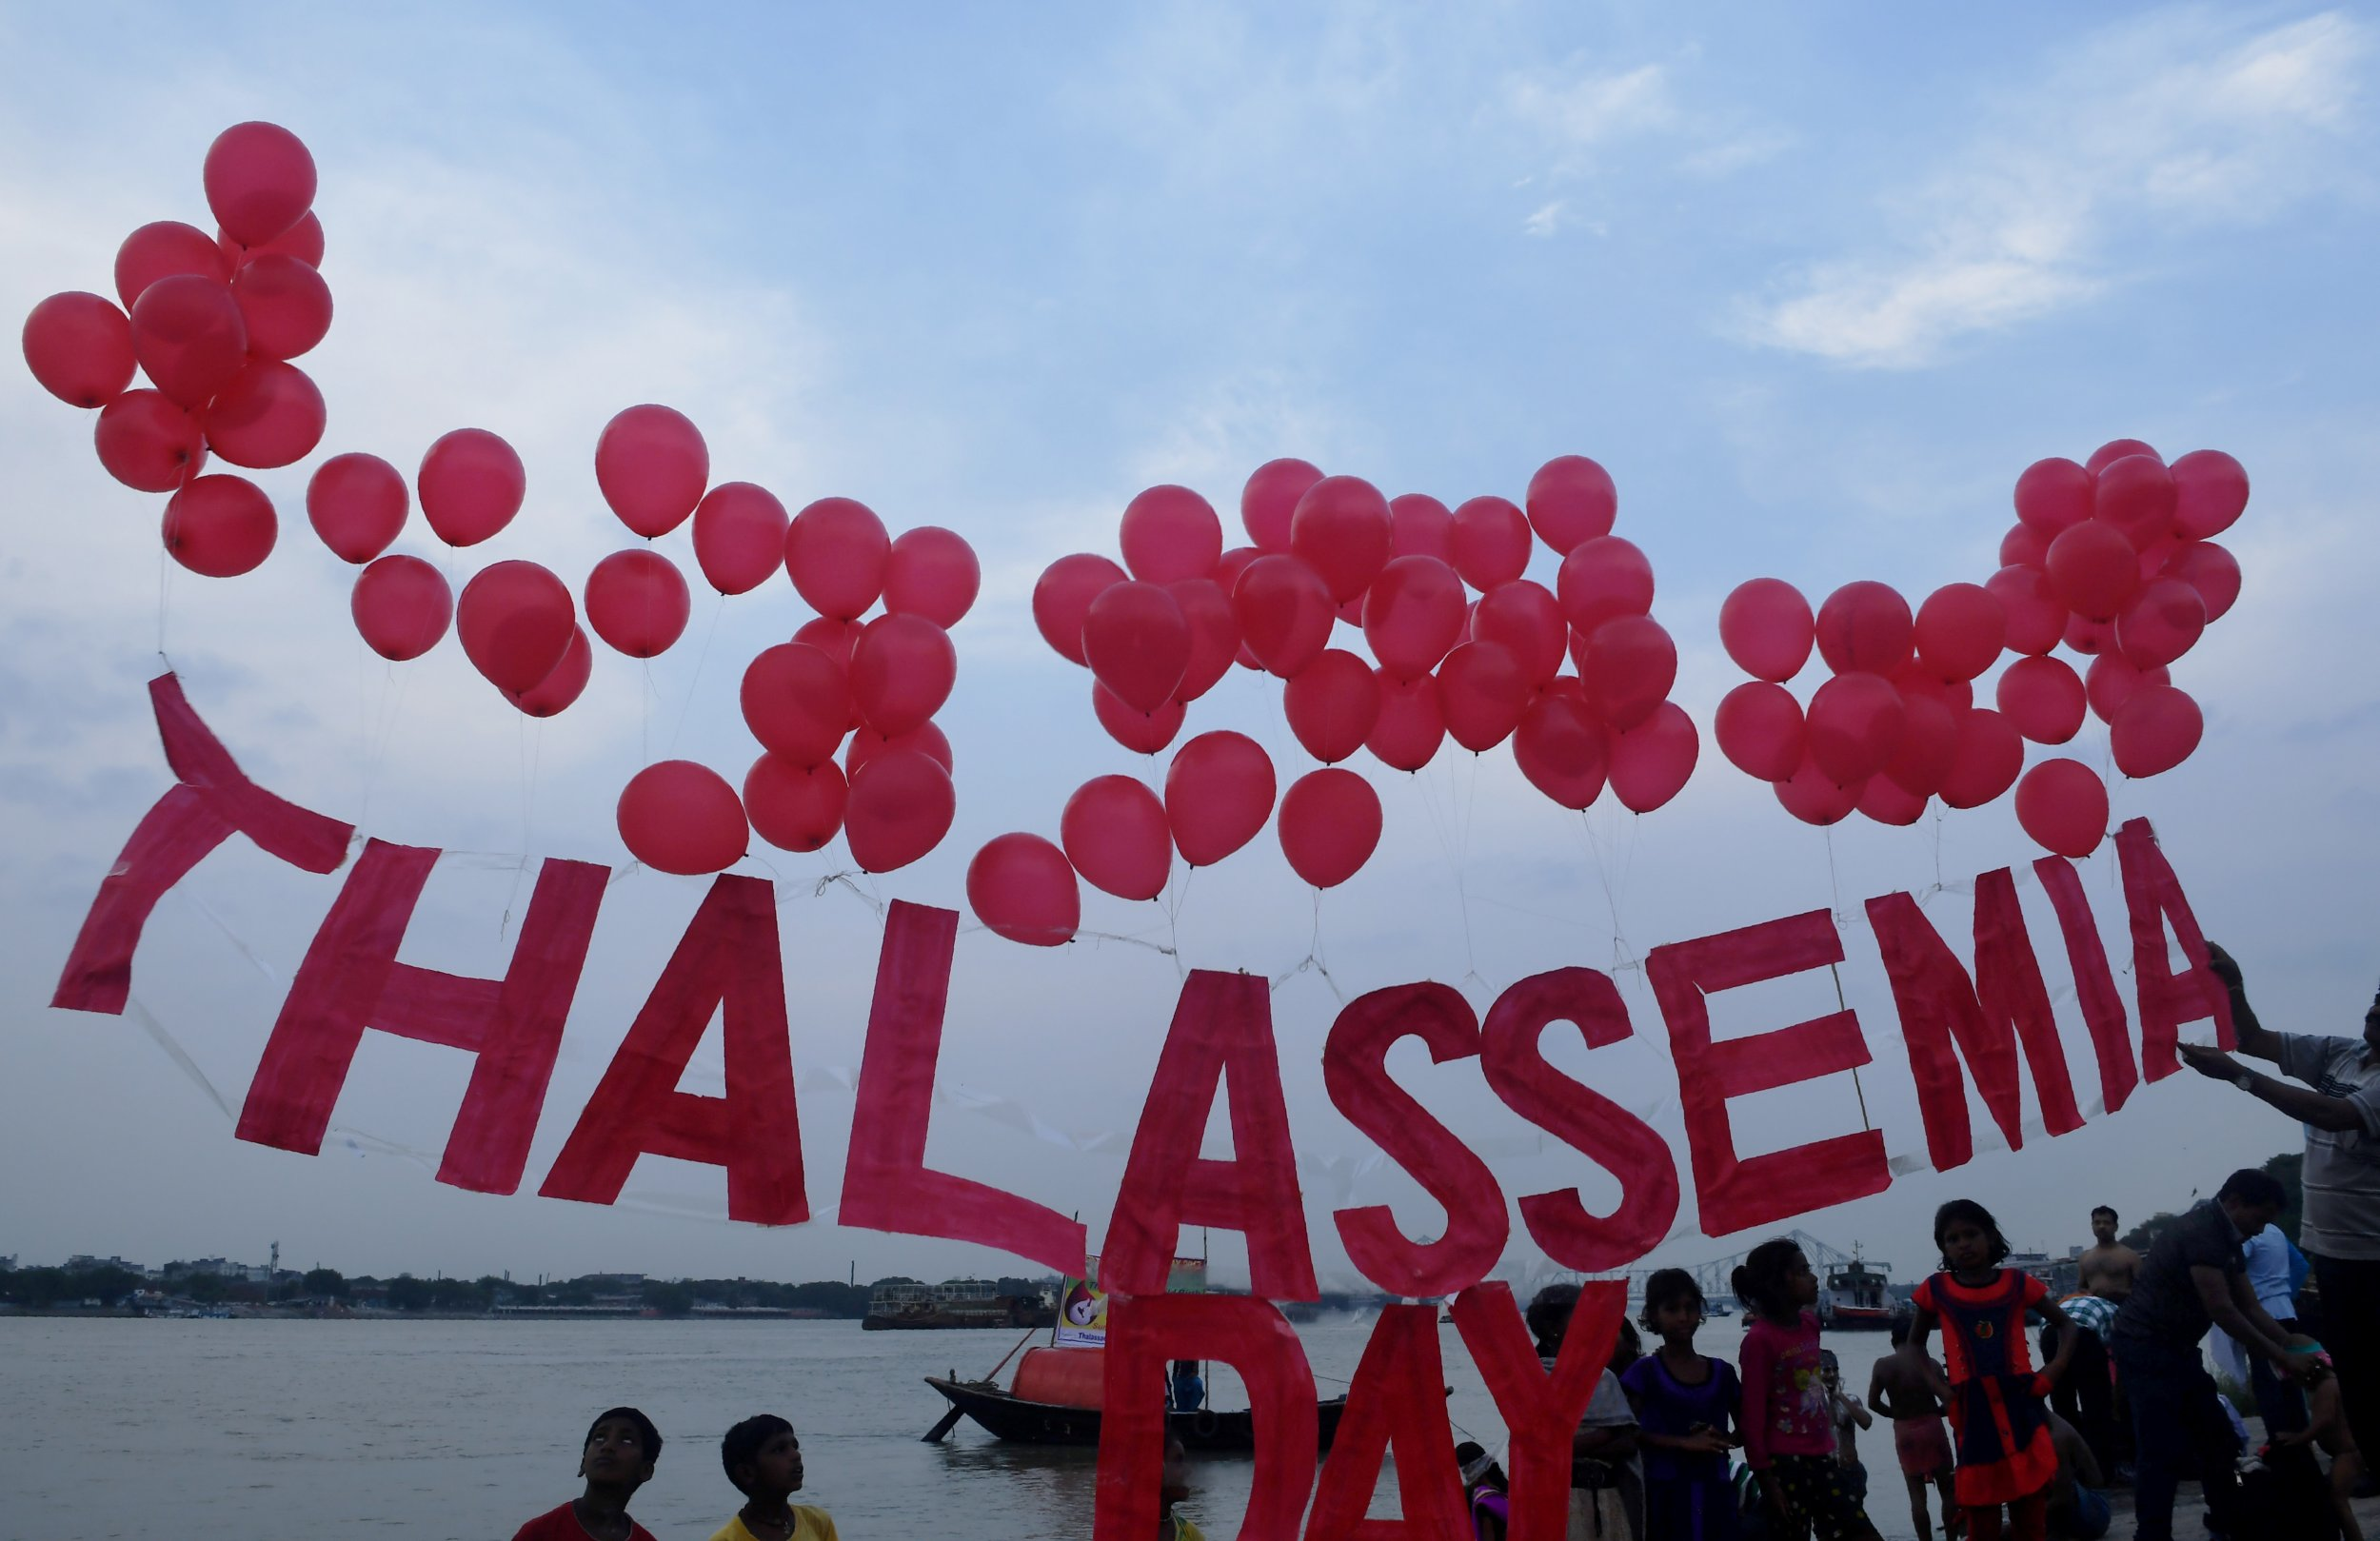 4_16_Thalassemia Day